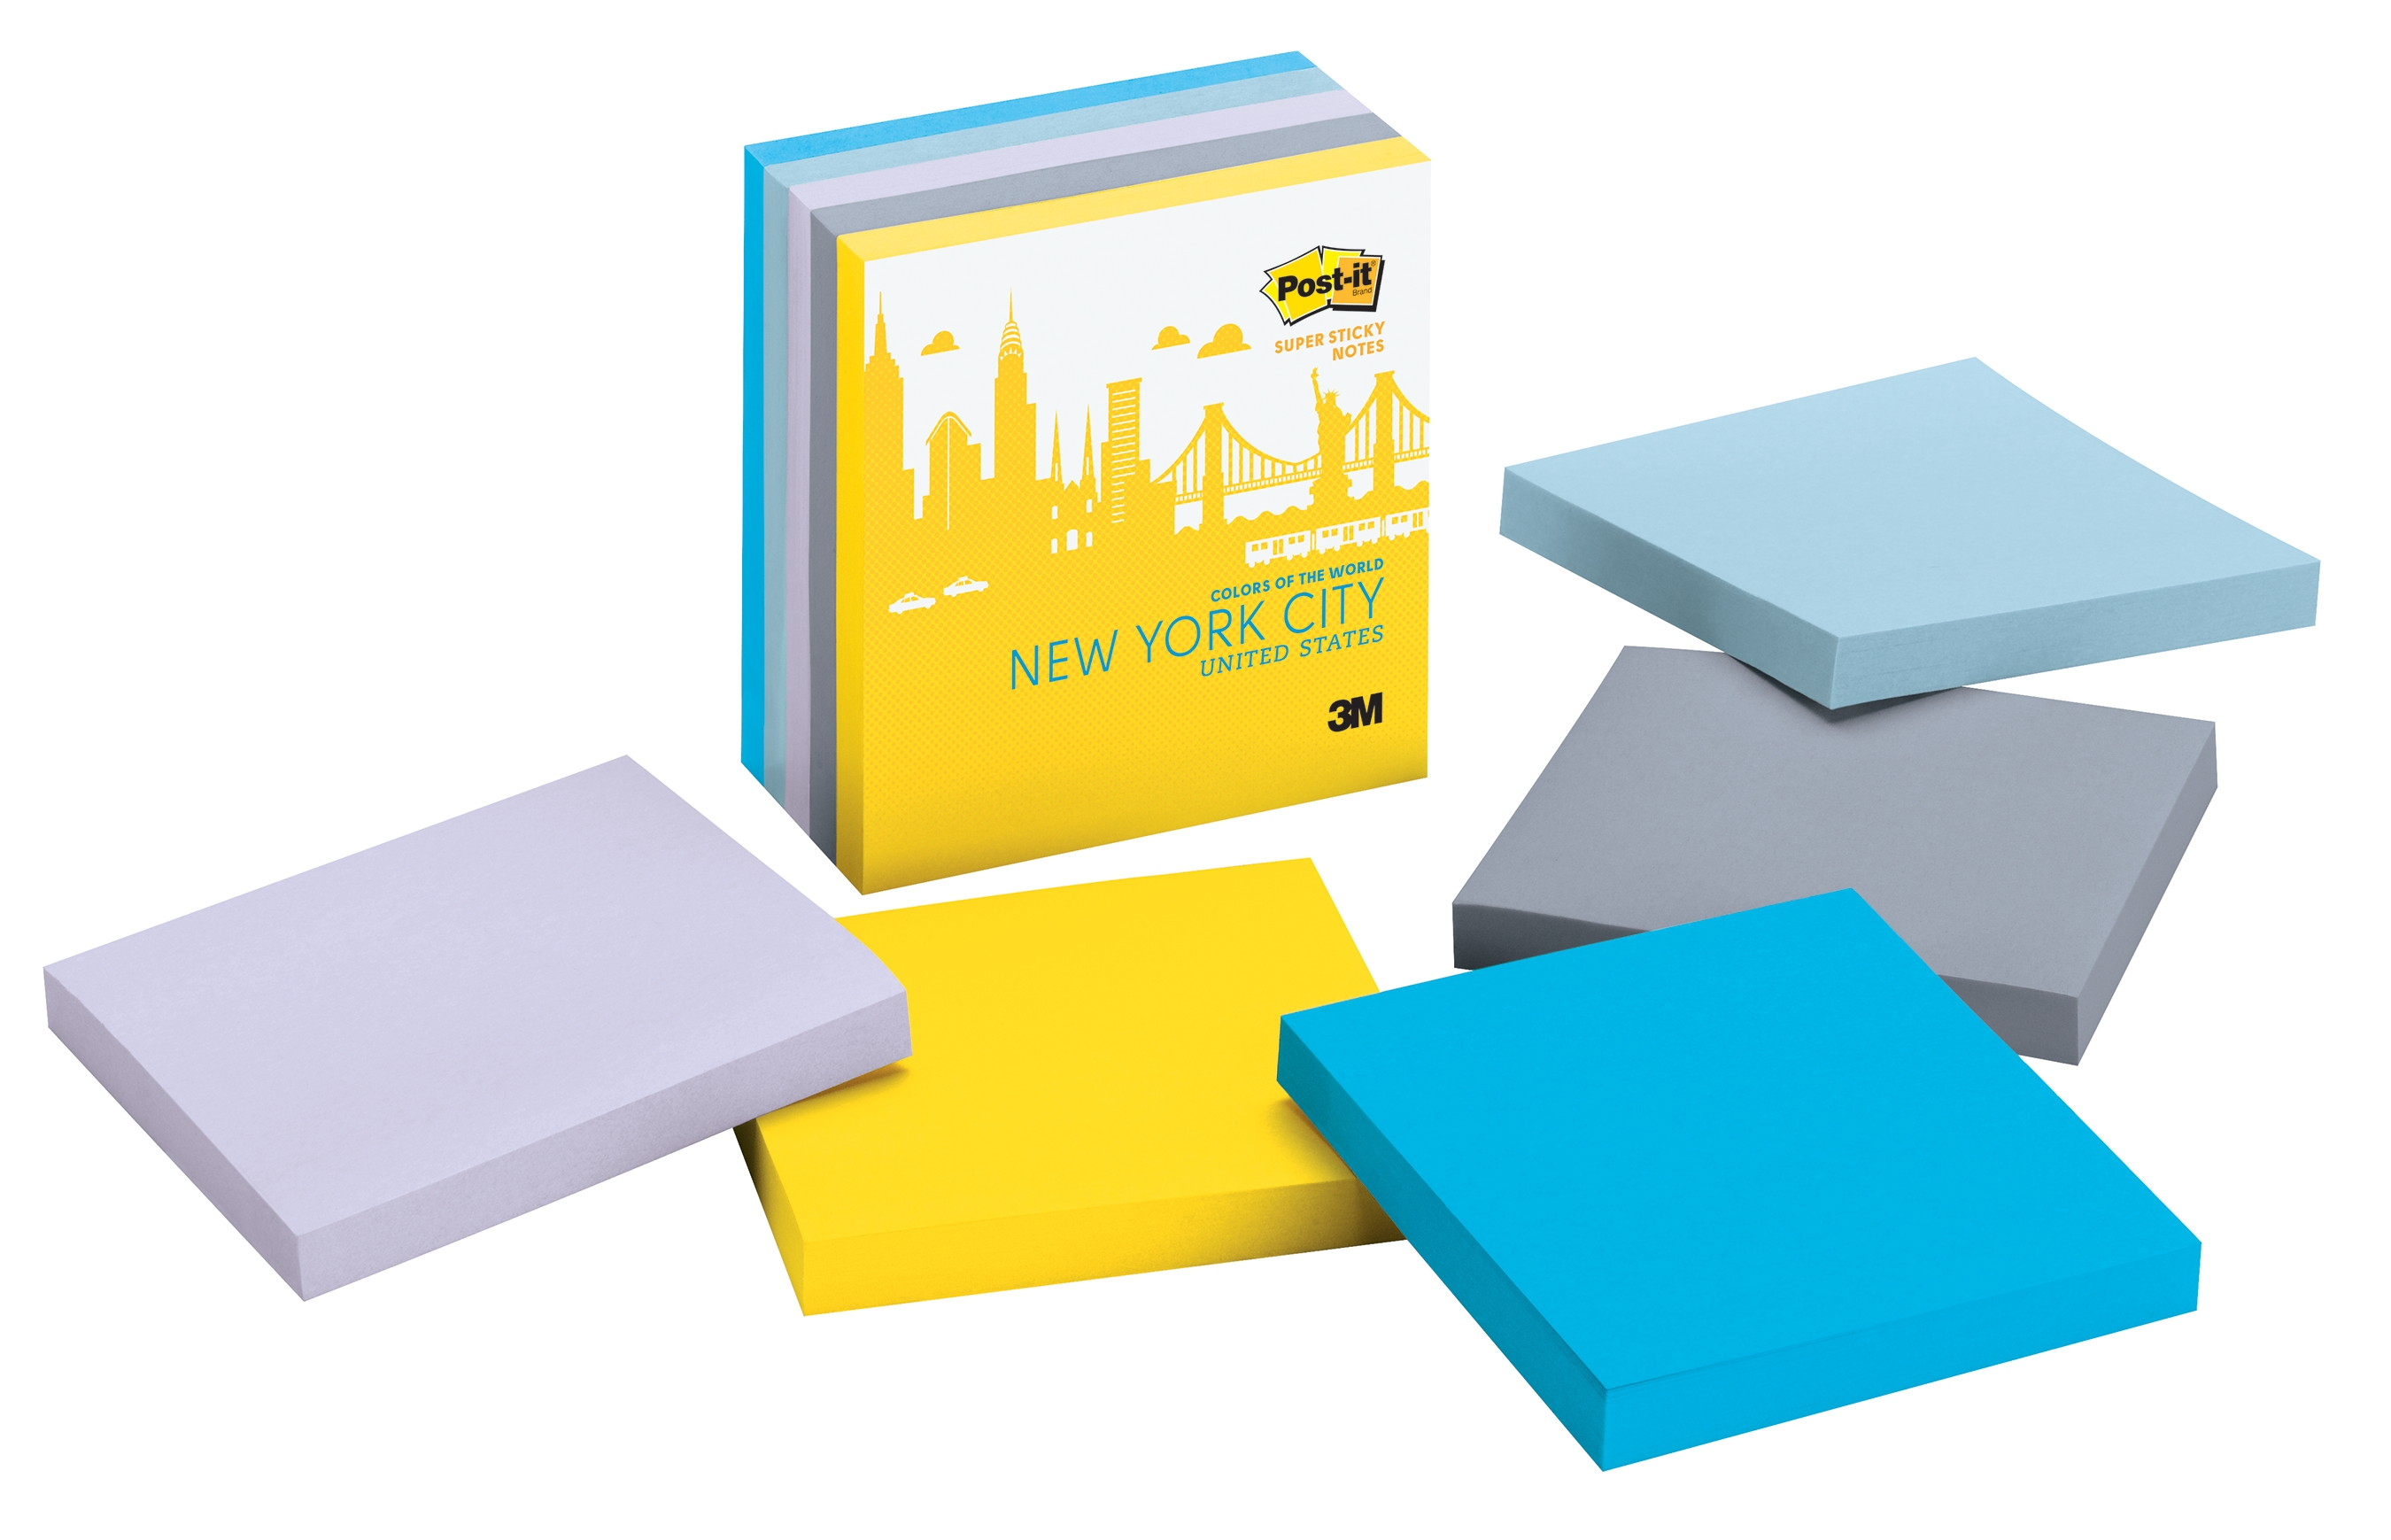 The New York Color Collection from the new Post-it Brand Colors of the World Collection (Photo: Business Wire)